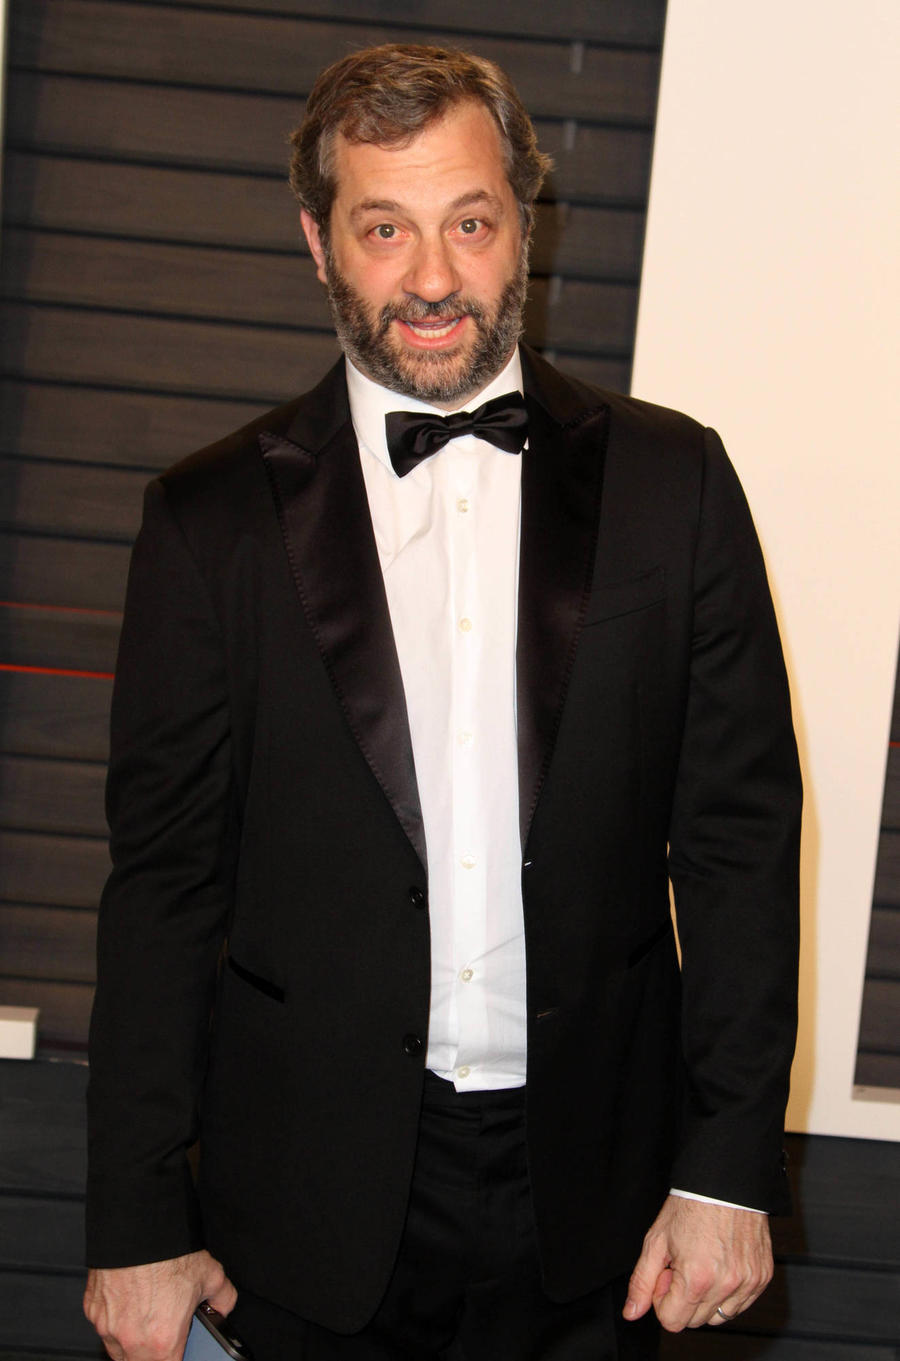 Judd Apatow Wants His Movies To Give 'Good Buzz'